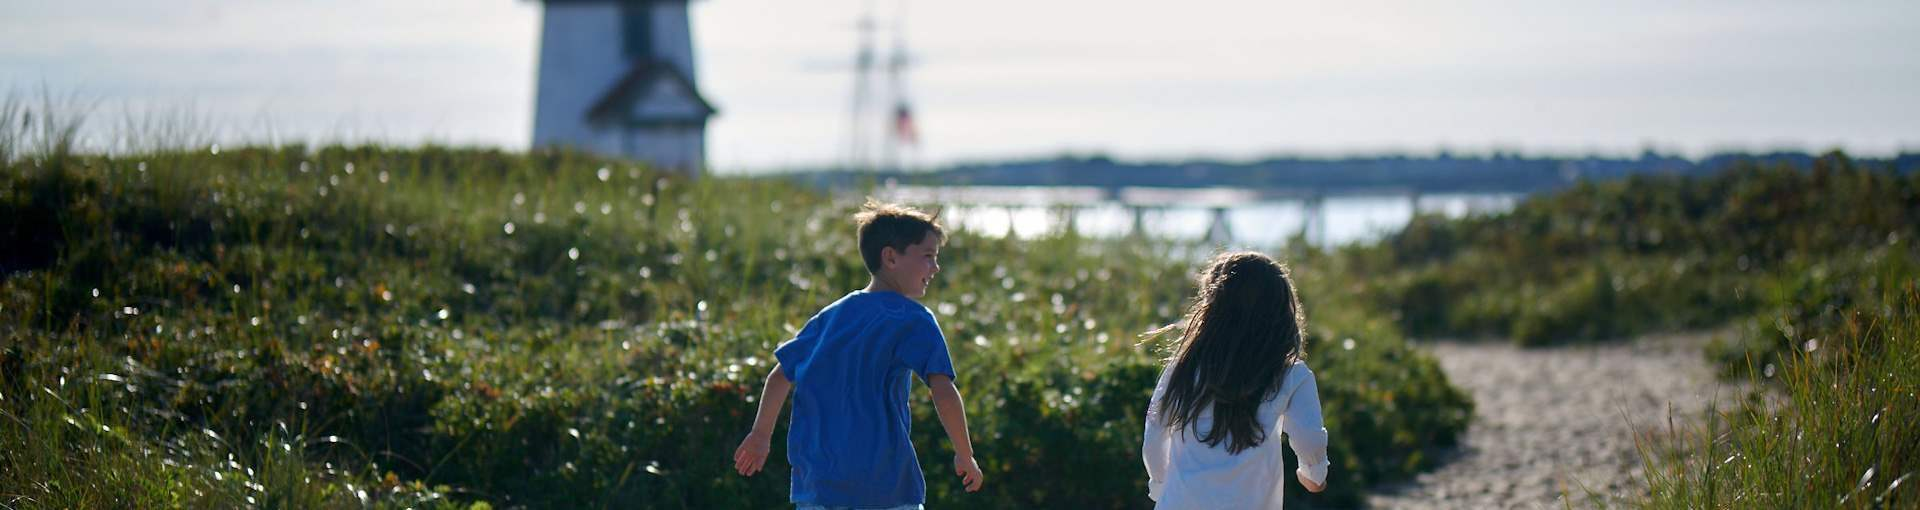 White Elephant Resorts, Nantucket offers Family Vacations